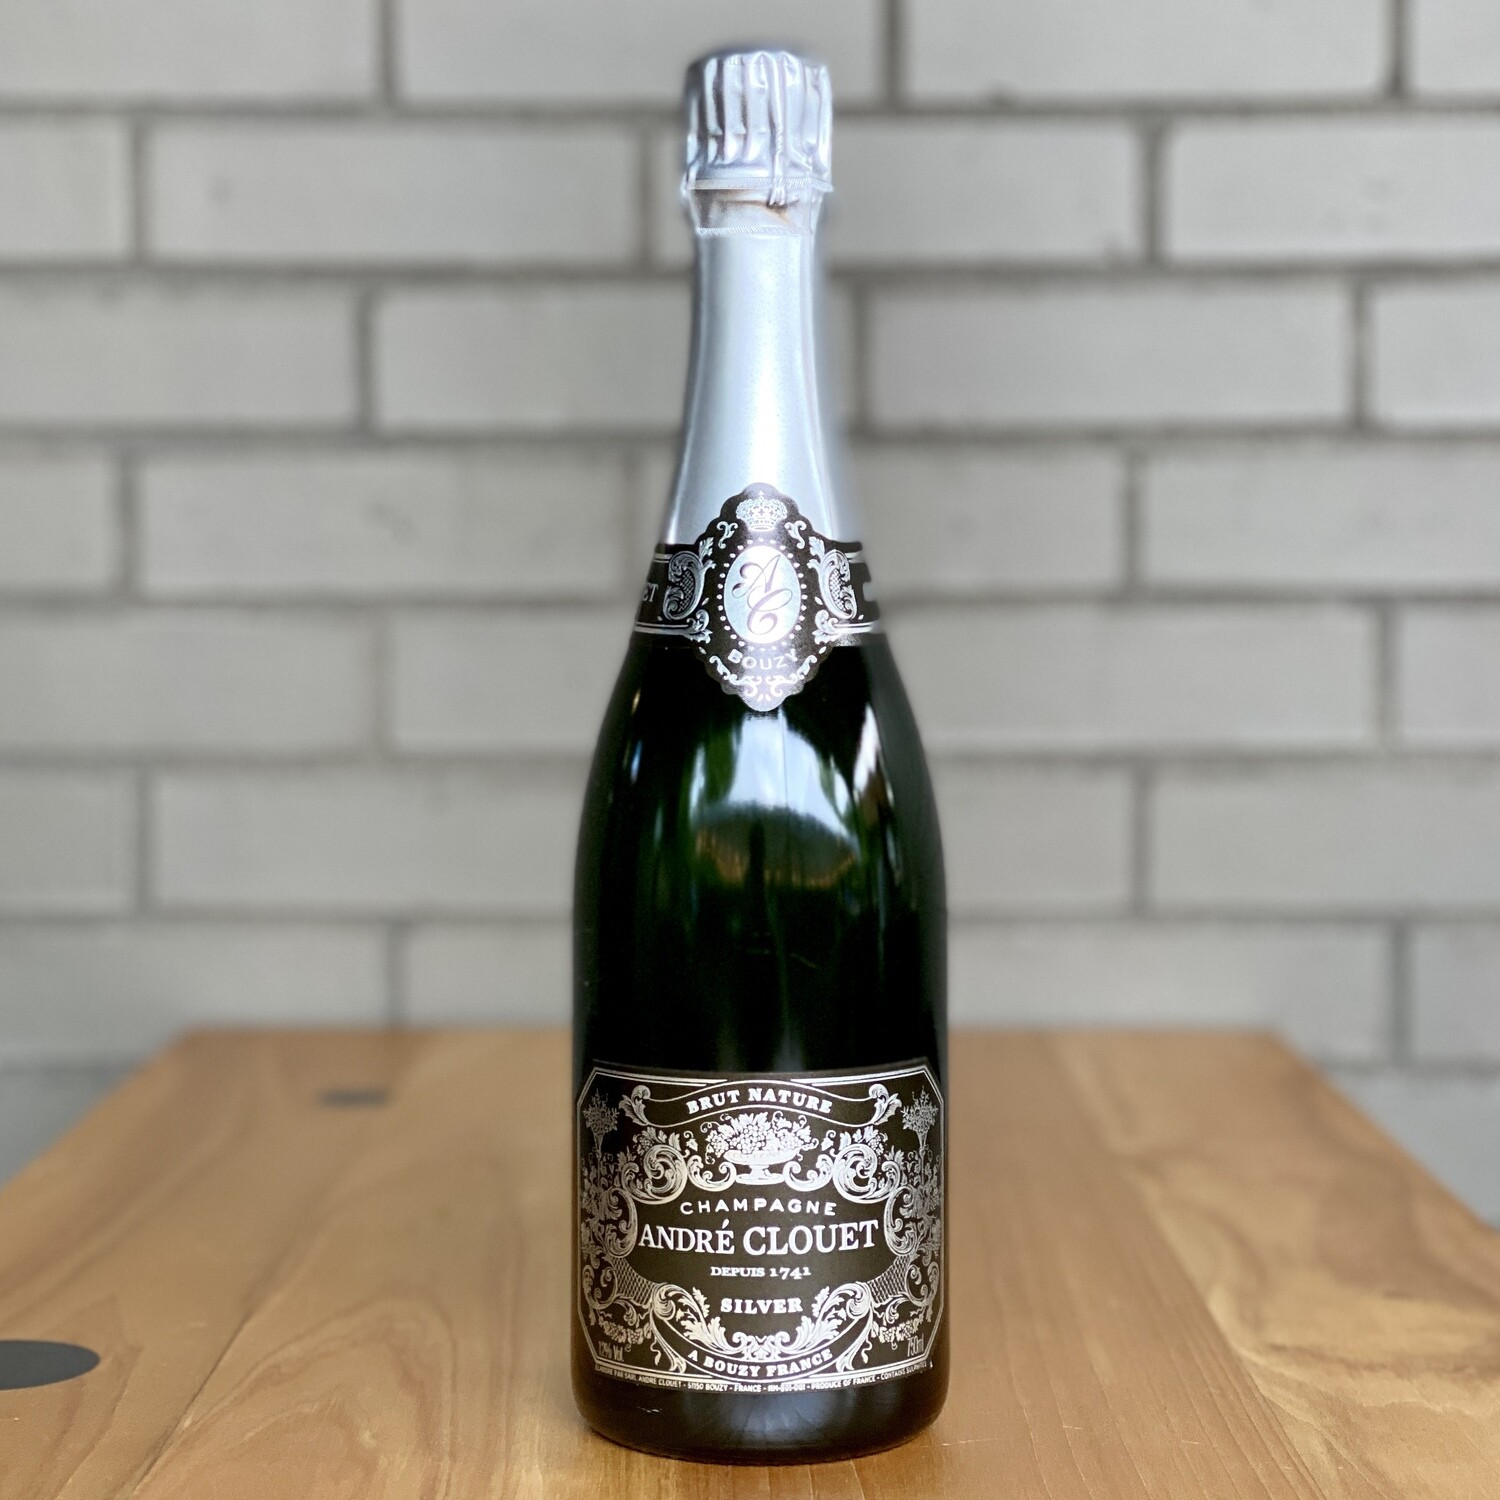 Andre Clouet Champagne Brut Nature (750ml)